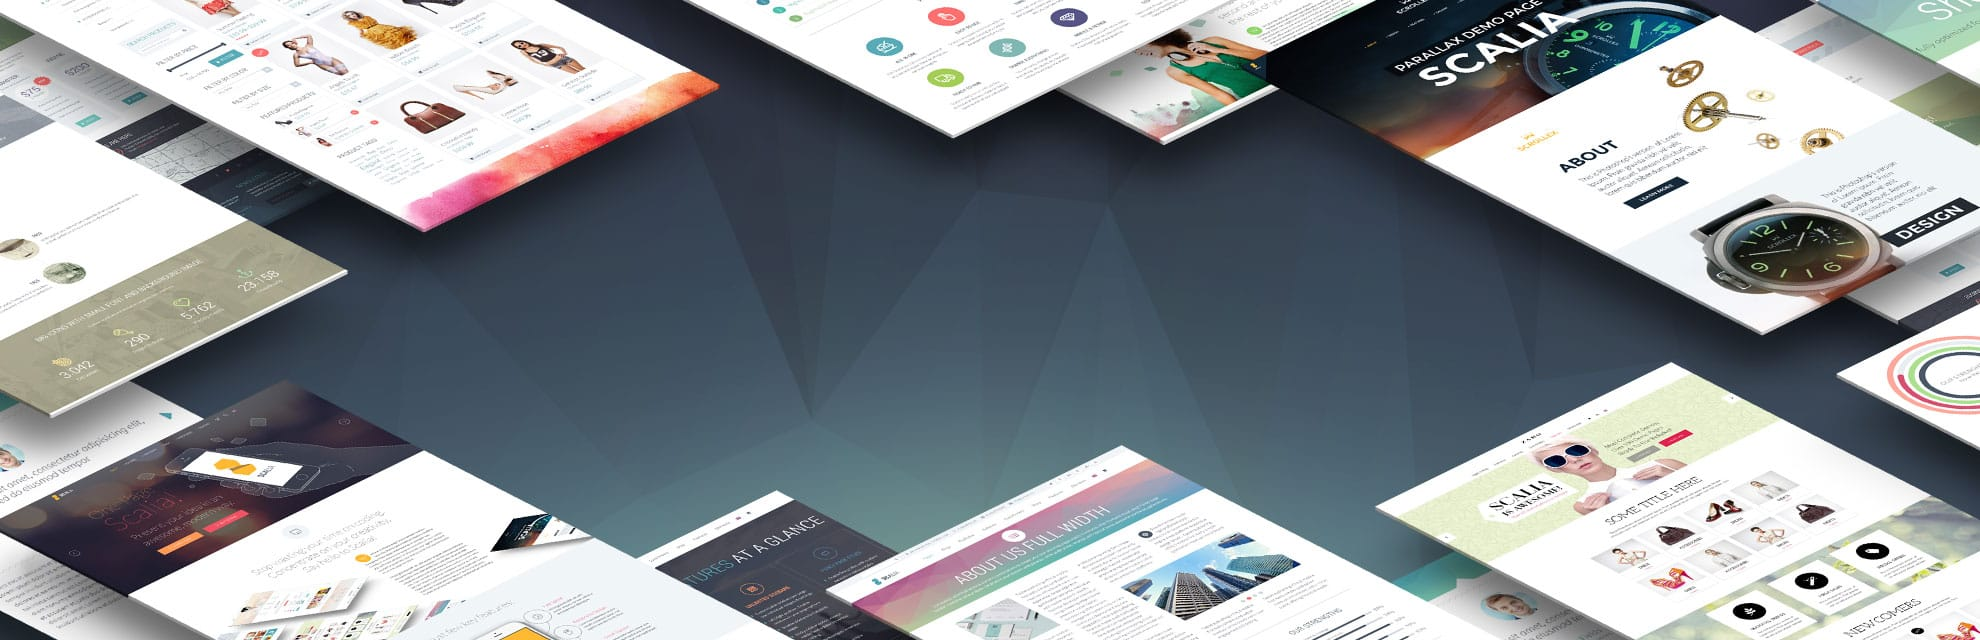 Planches web